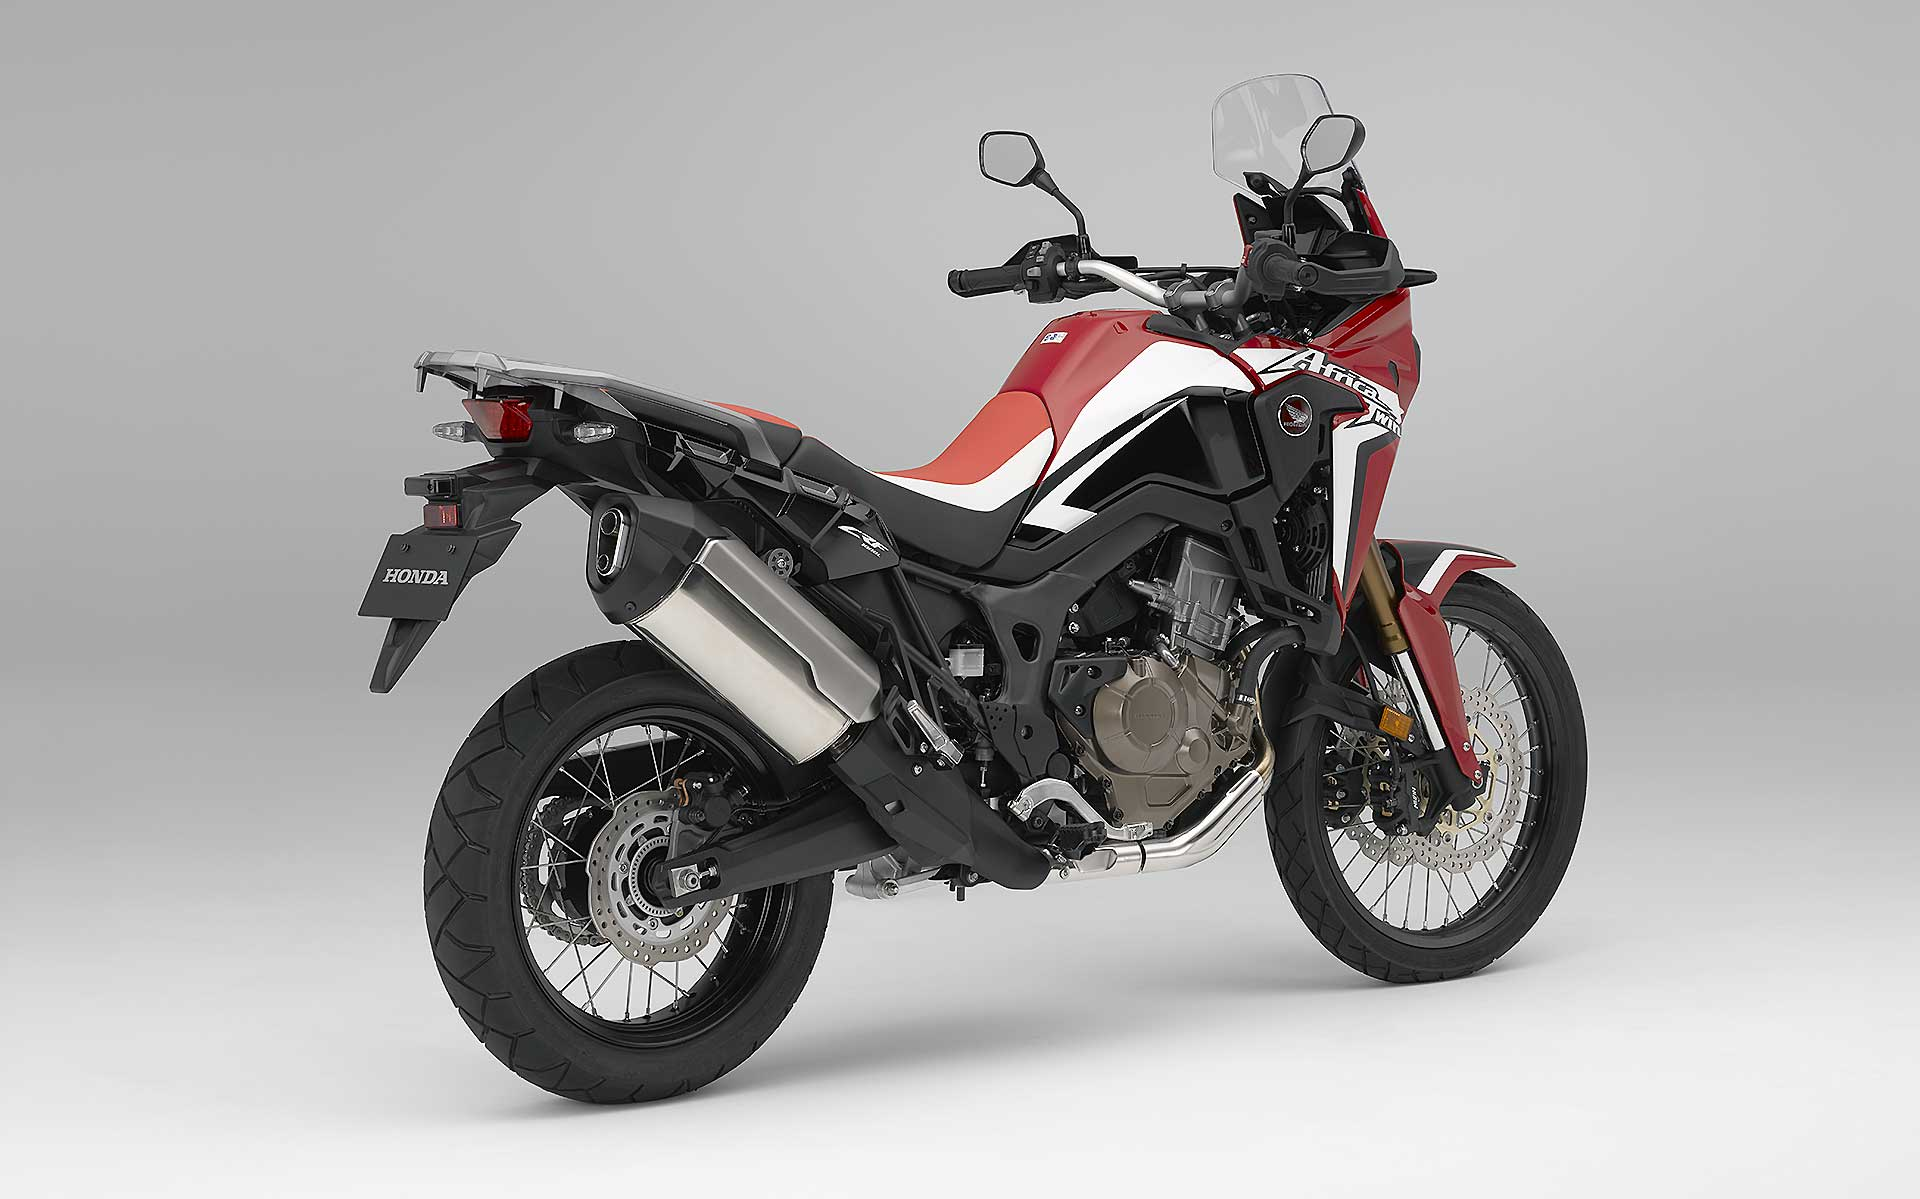 honda africa twin my2018 foto e info novit 2018. Black Bedroom Furniture Sets. Home Design Ideas